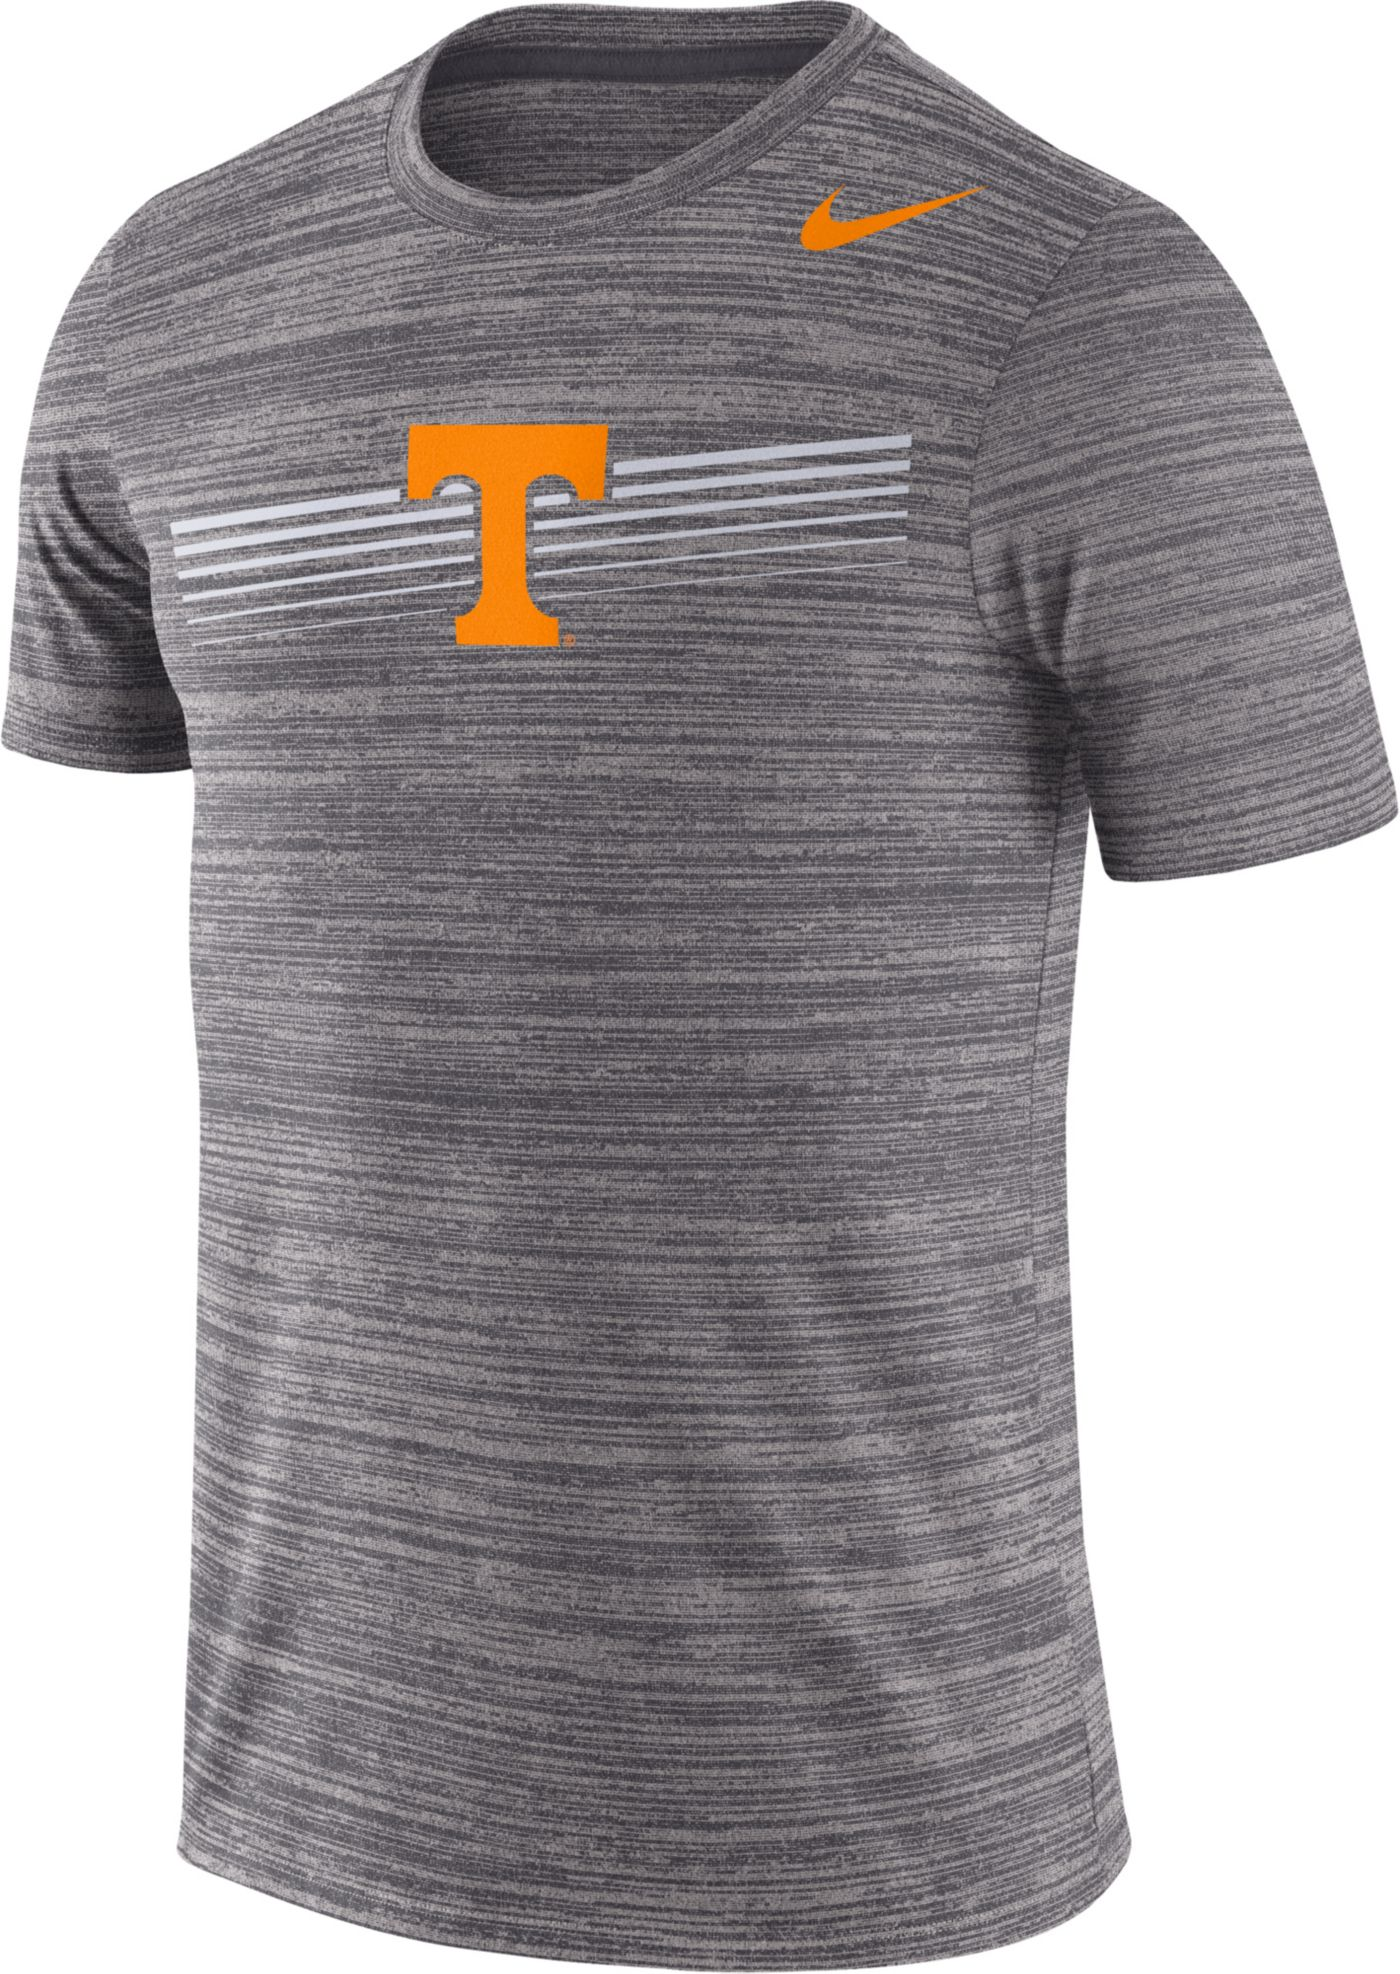 Nike Men's Tennessee Volunteers Grey Velocity Legend Graphic T-Shirt